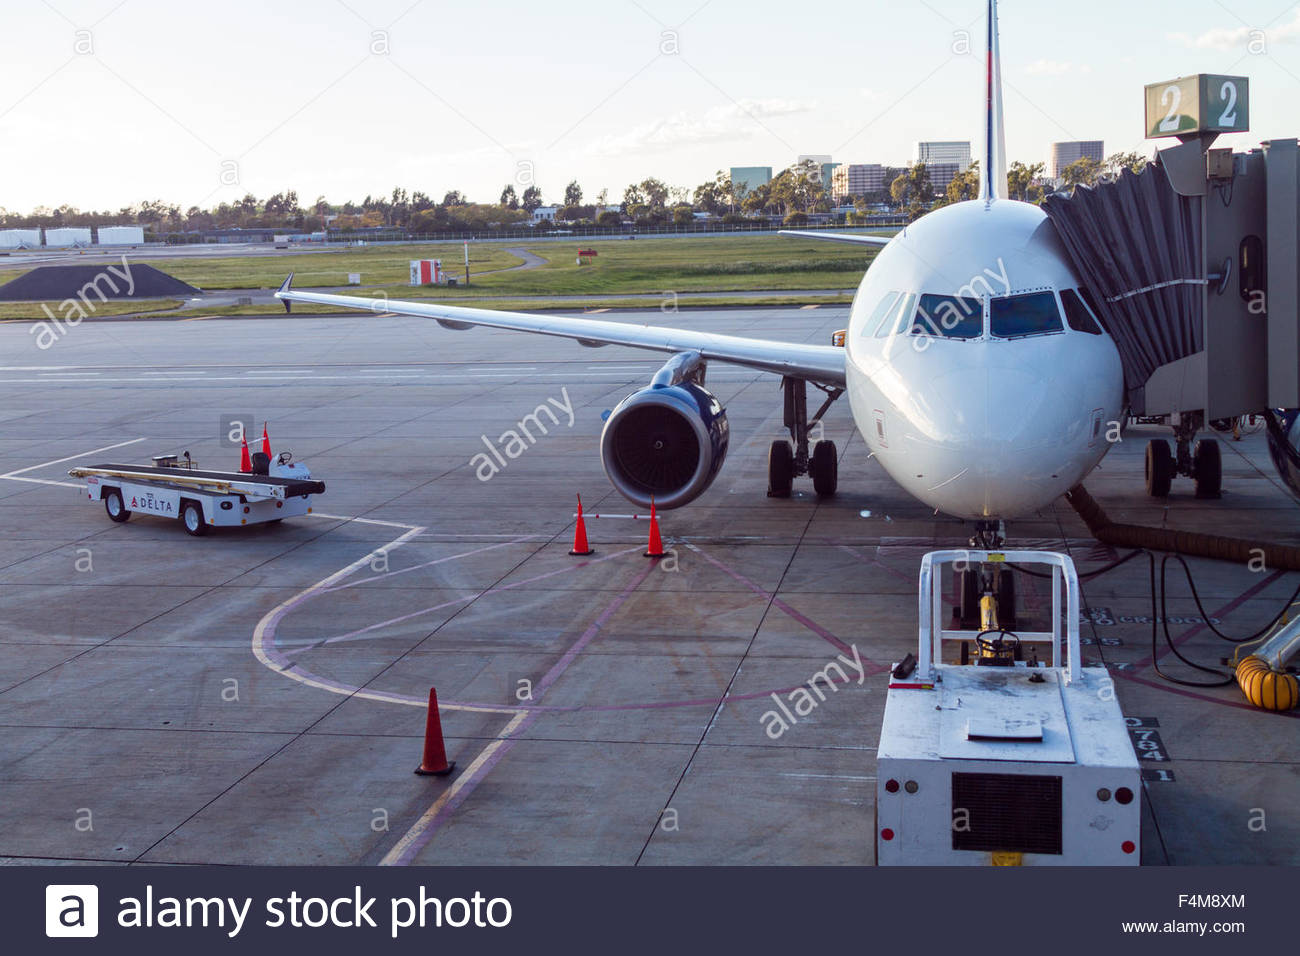 An American Airlines Boeing 737 sits at the gate at John Wayne Airport, California - Stock Image